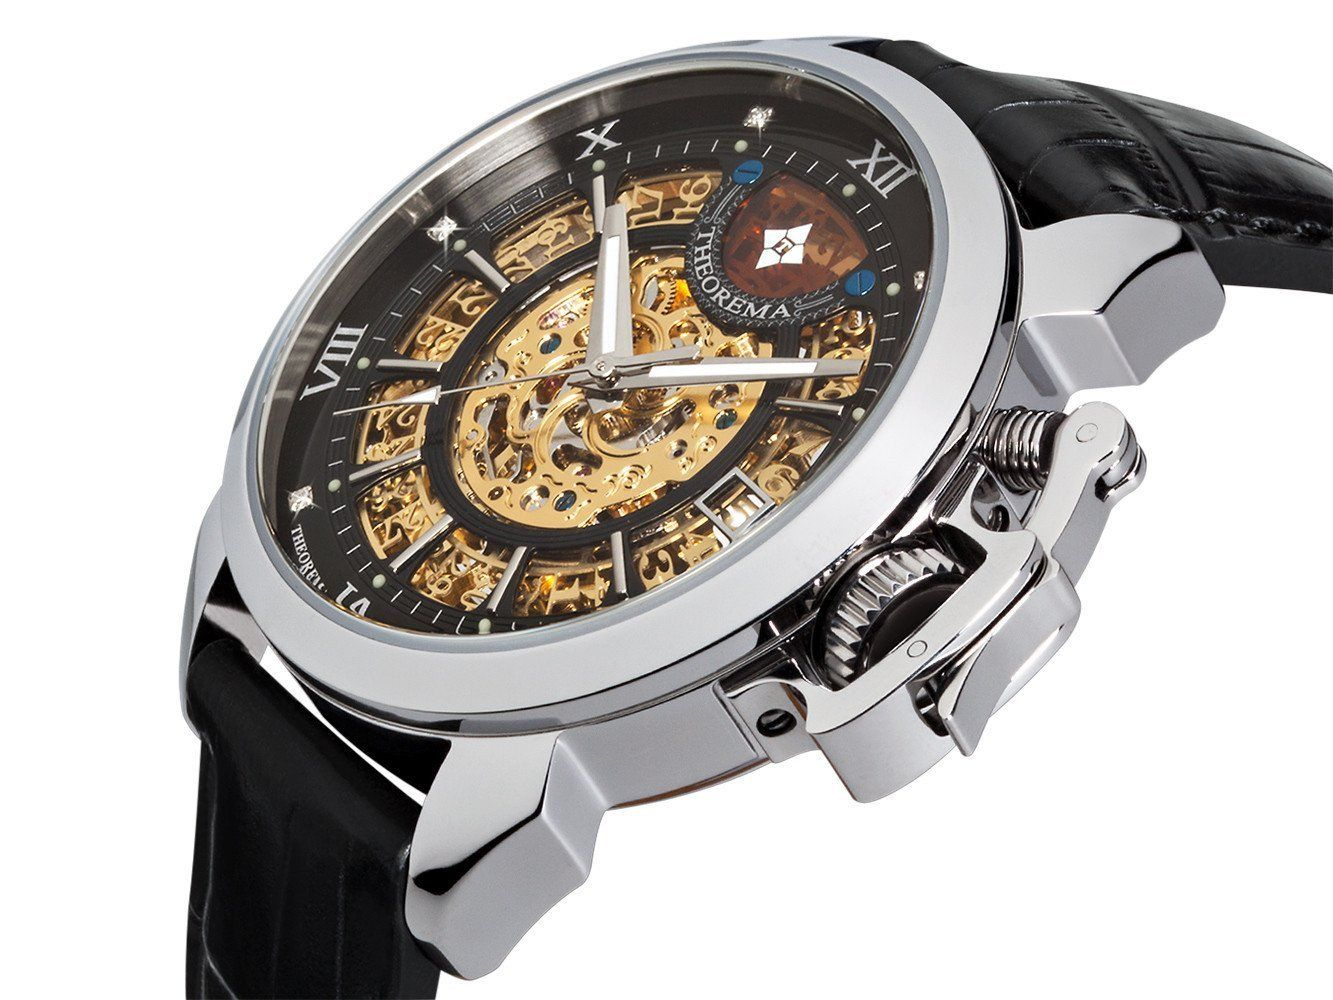 Exquisite diamond placement and precise automatic movement